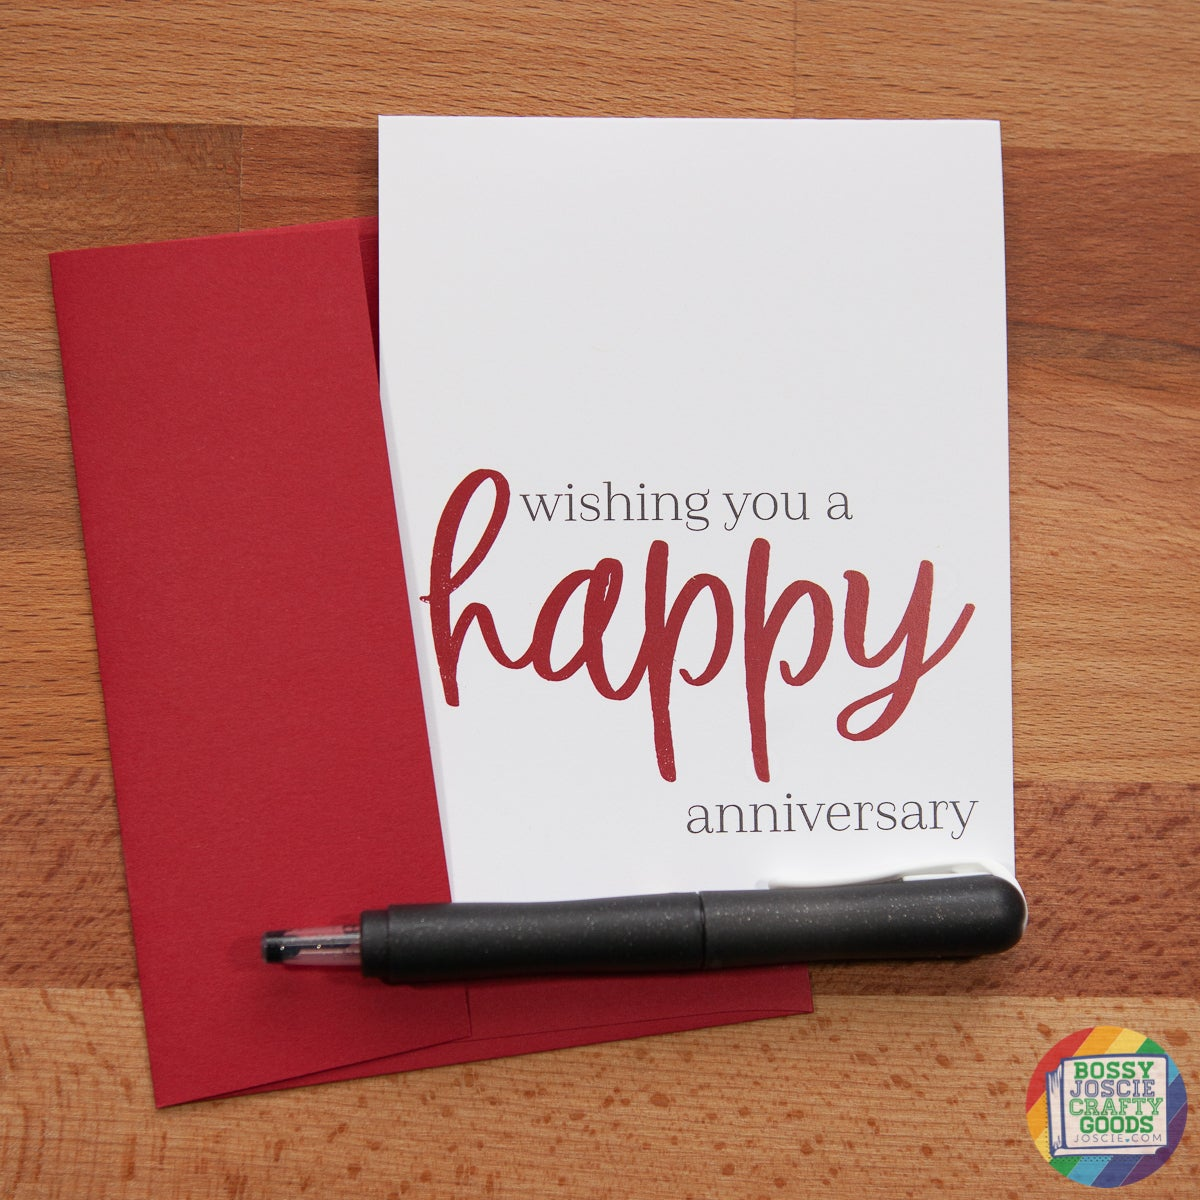 Image of wishing you a happy anniversary card